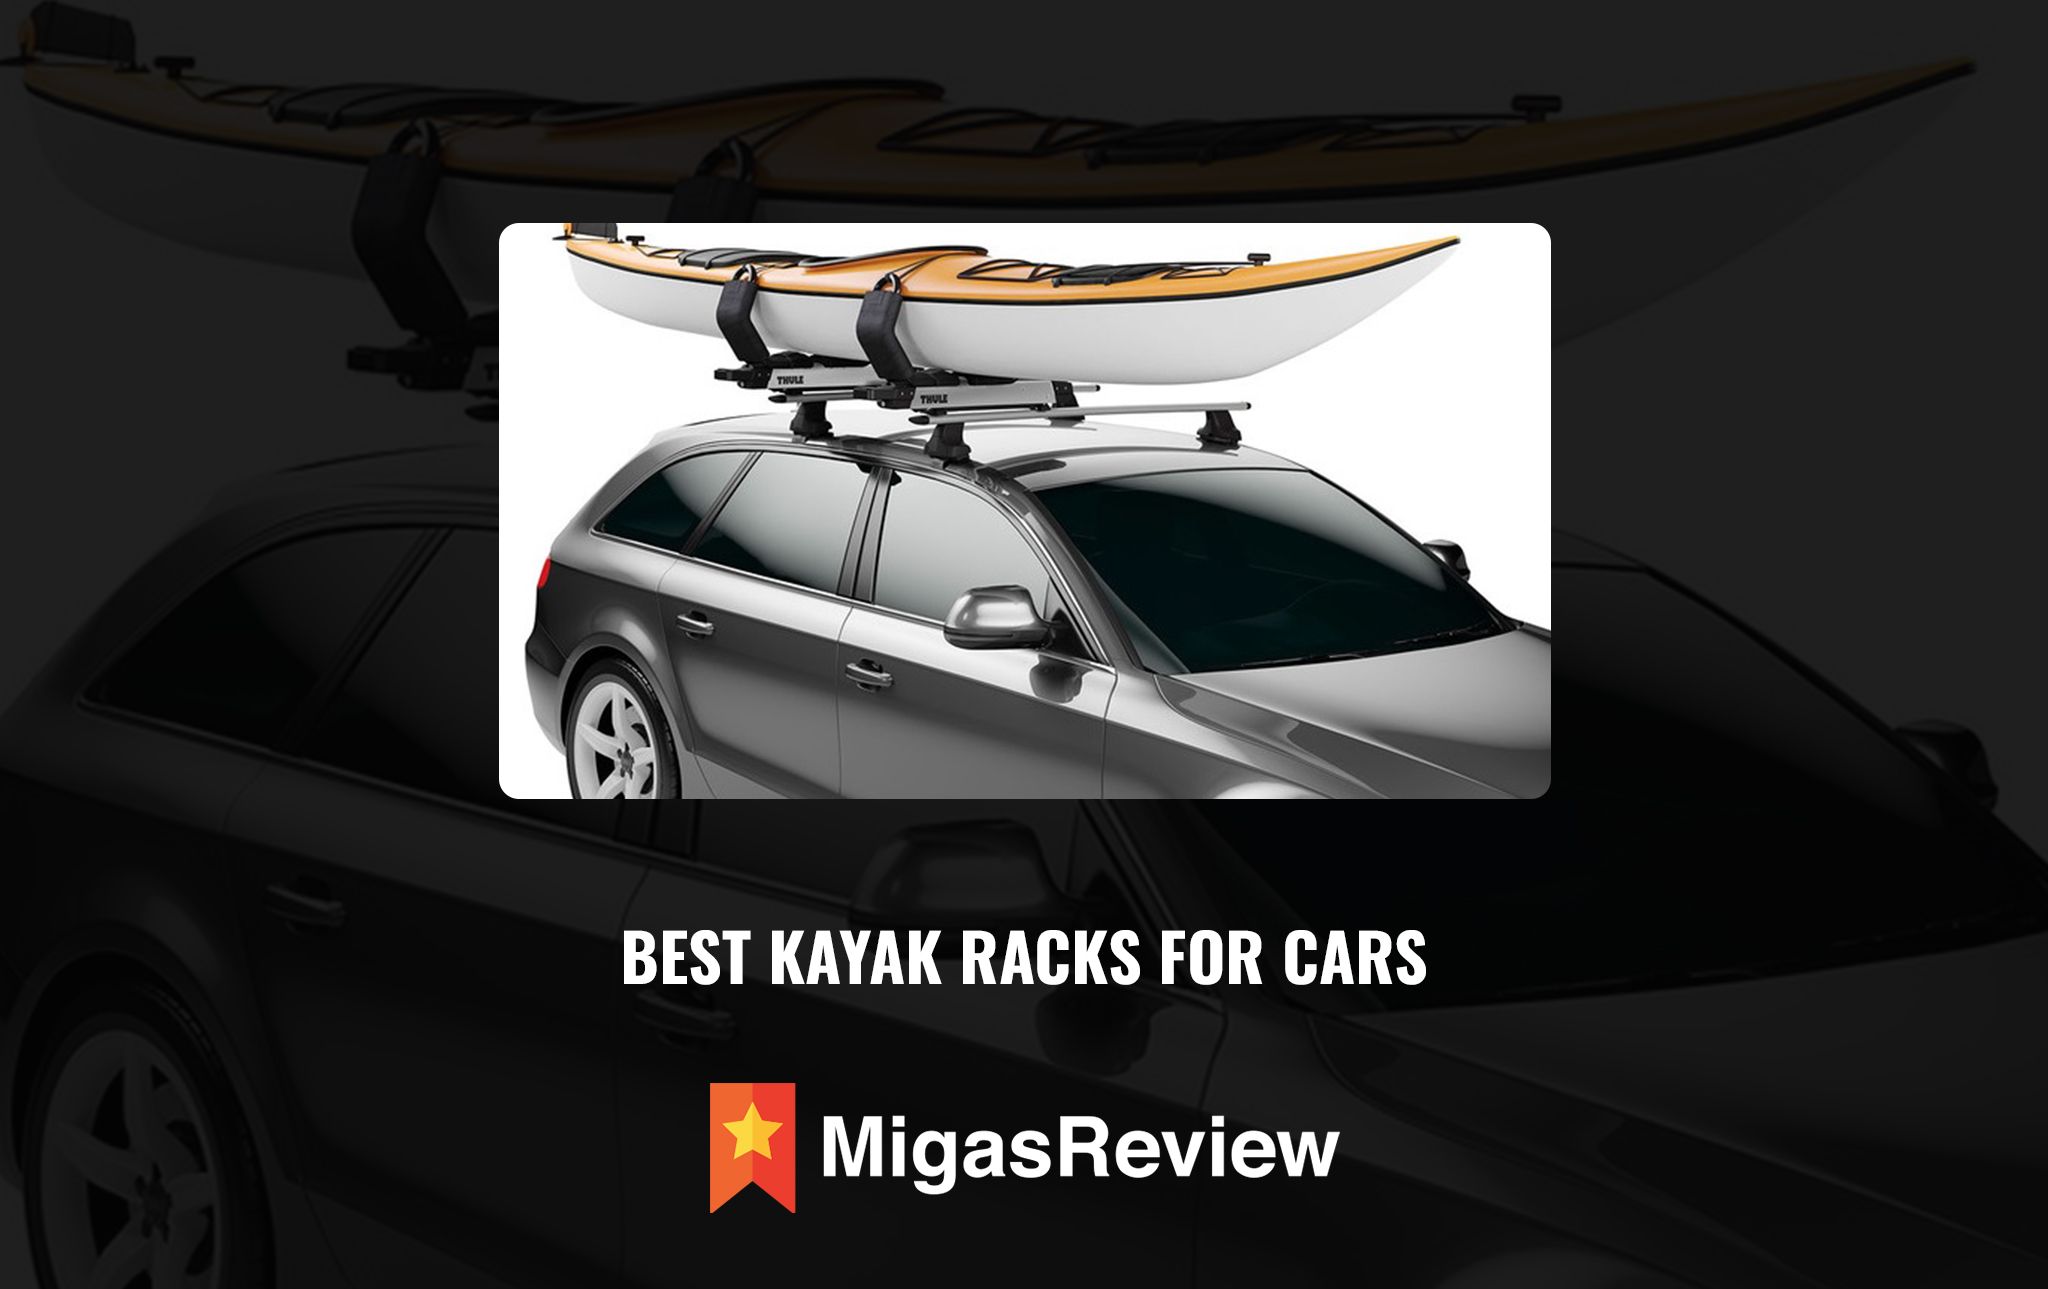 Best Kayak Racks for Cars